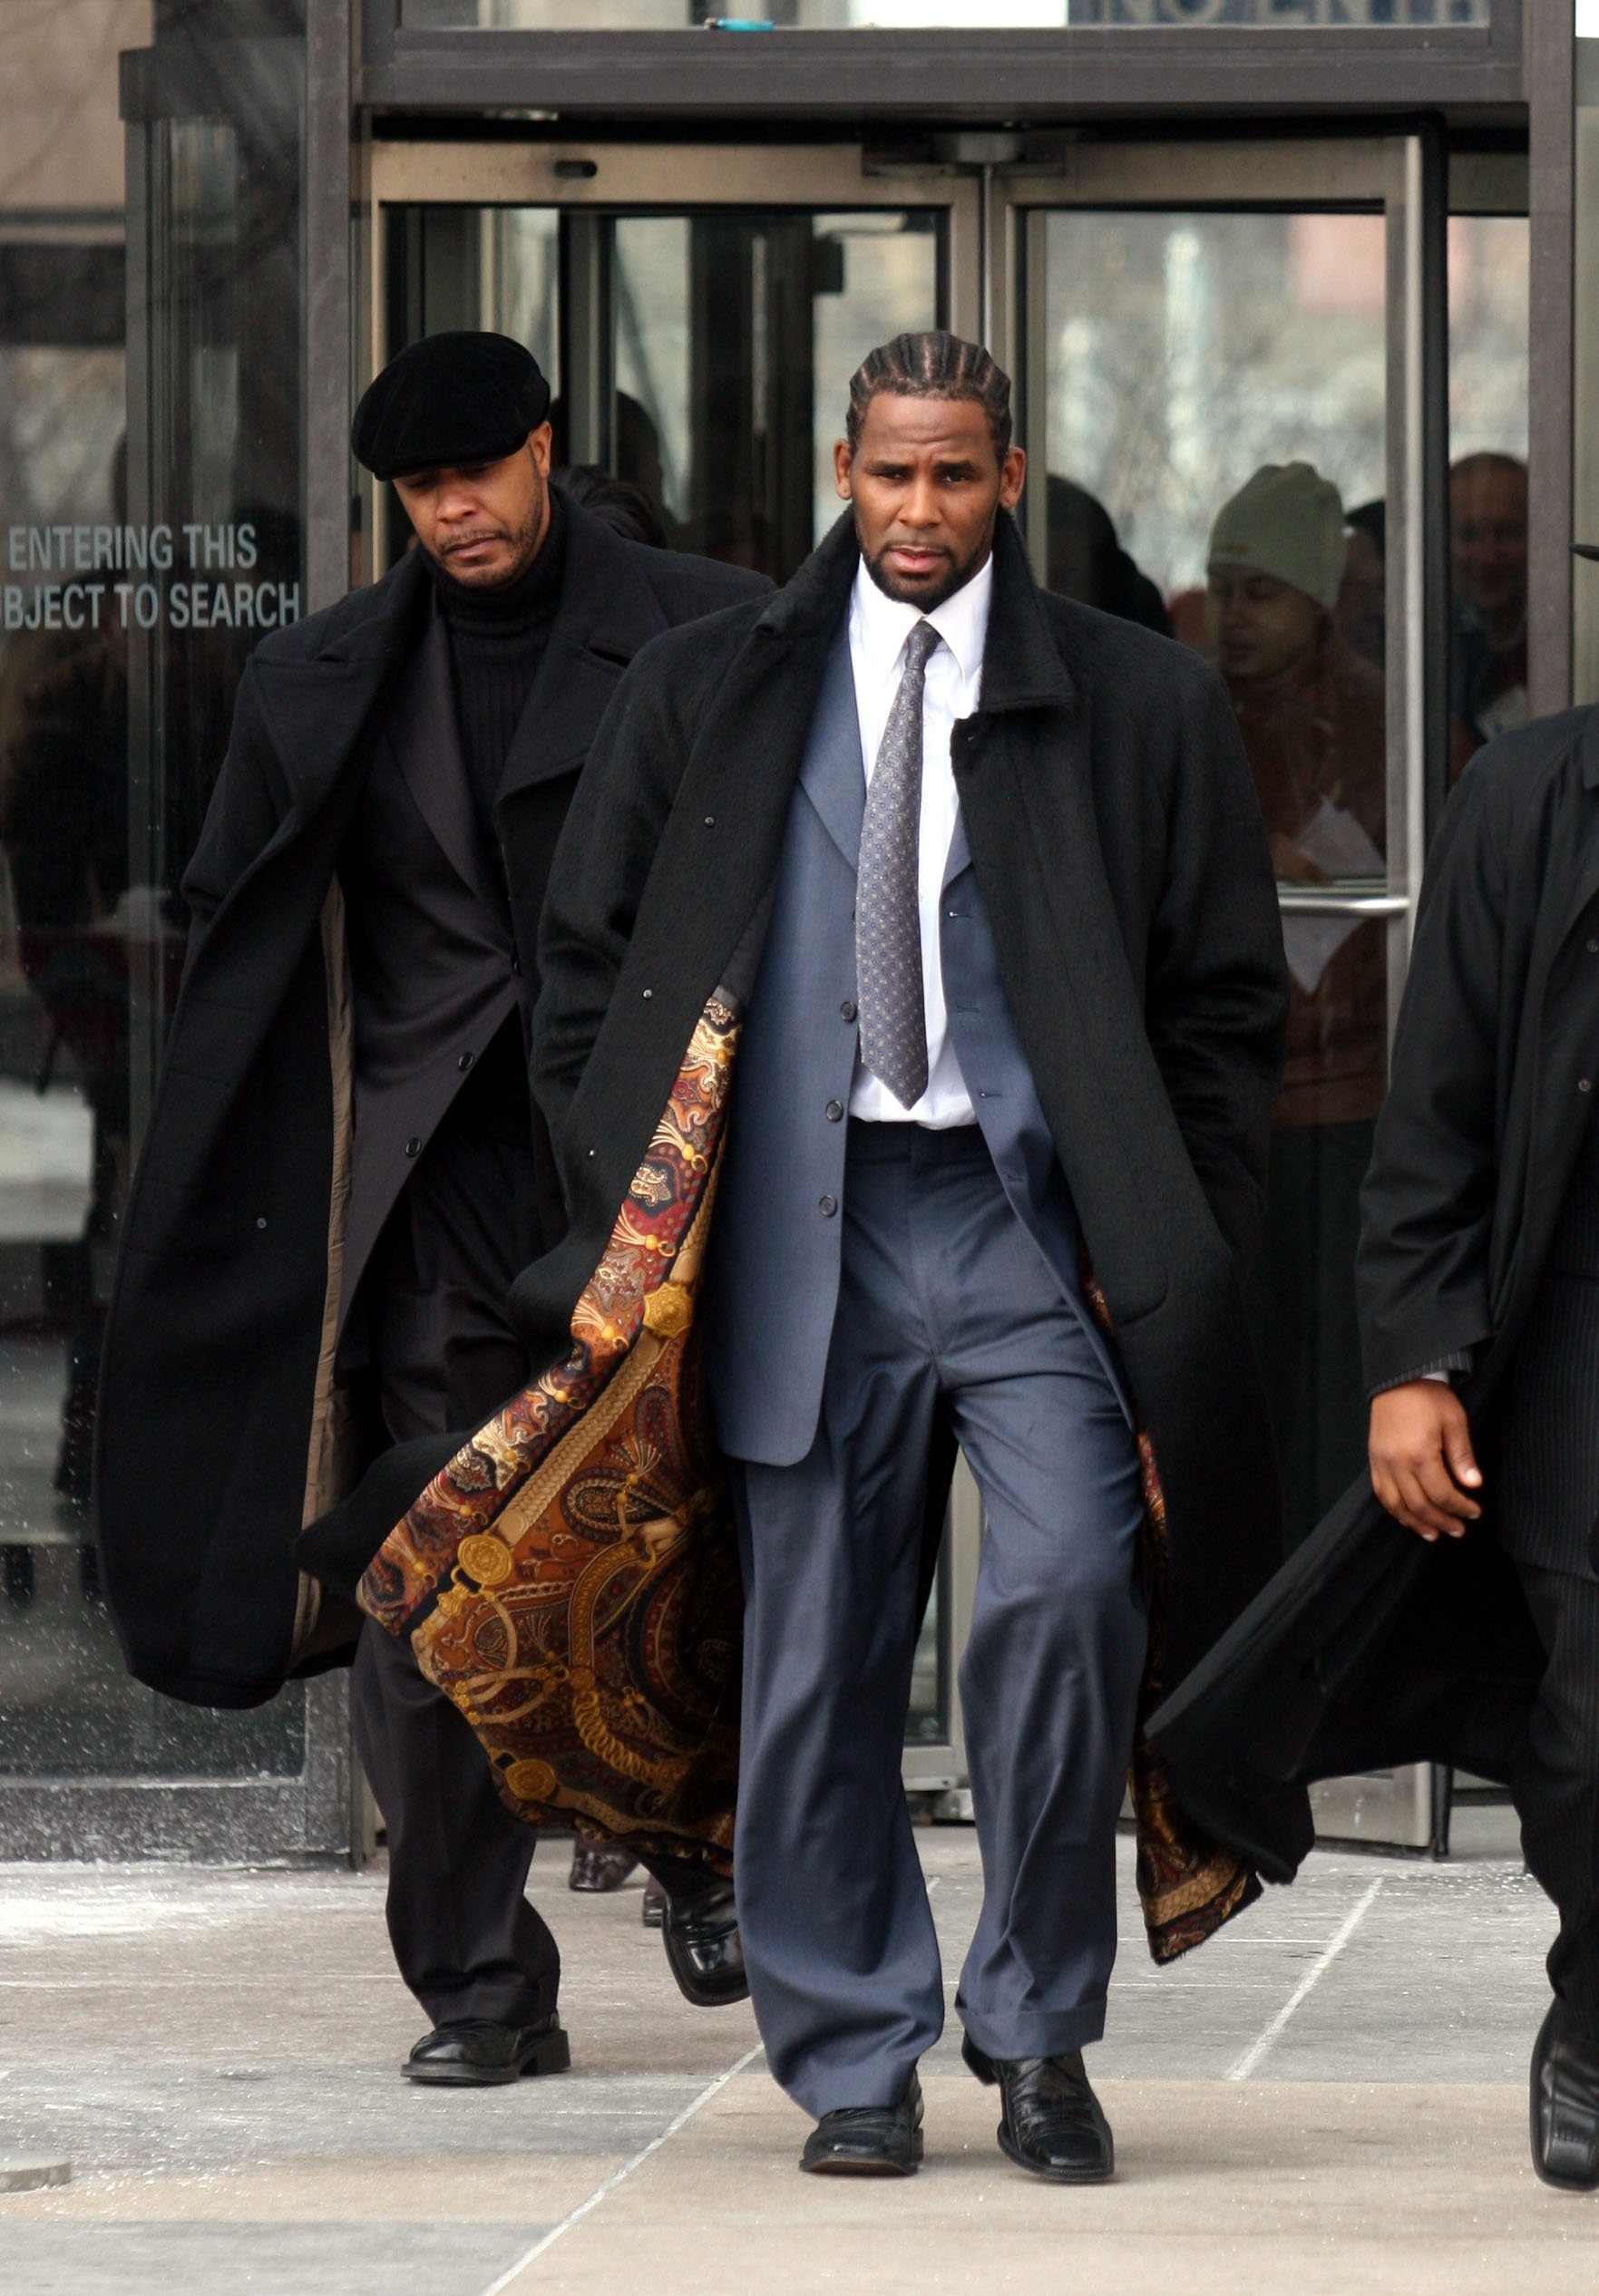 R. Kelly leaves Cook County Court after his court hearings on Dec. 20, 2007 in Chicago | Photo: Getty Images